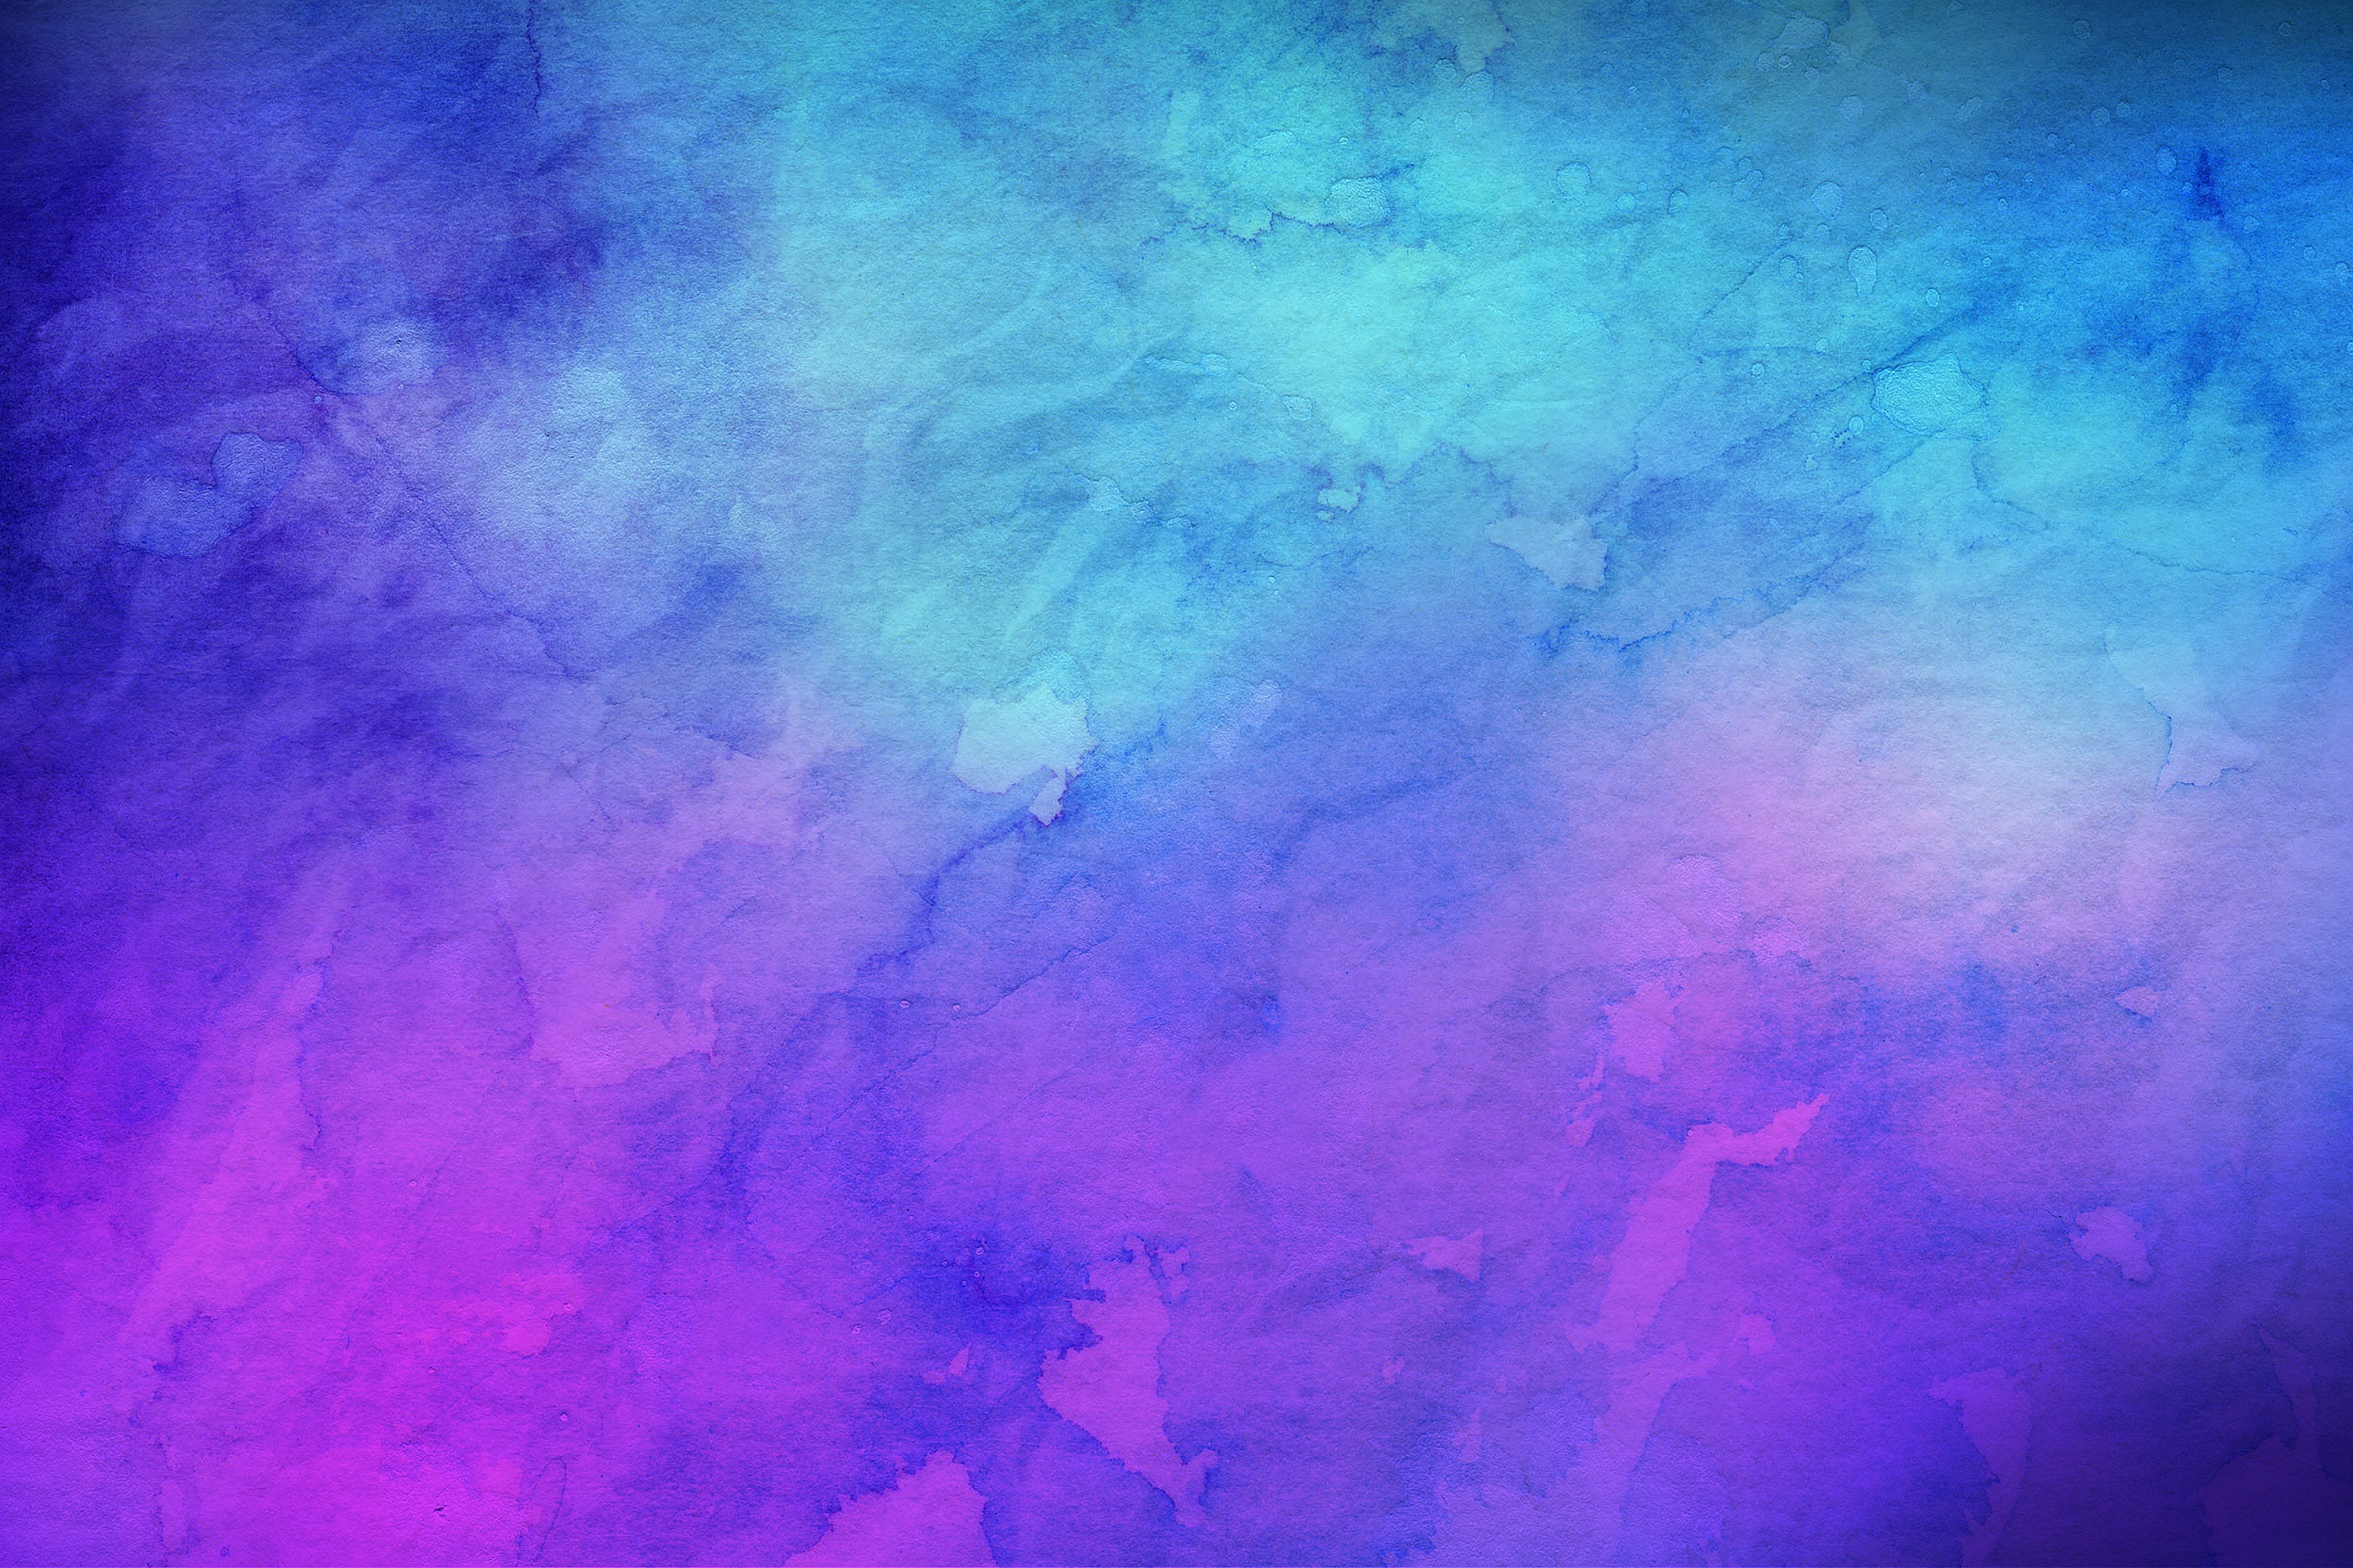 Watercolor Hd Wallpaper Background Image 2560x1706 Id 659402 Wallpaper Abyss